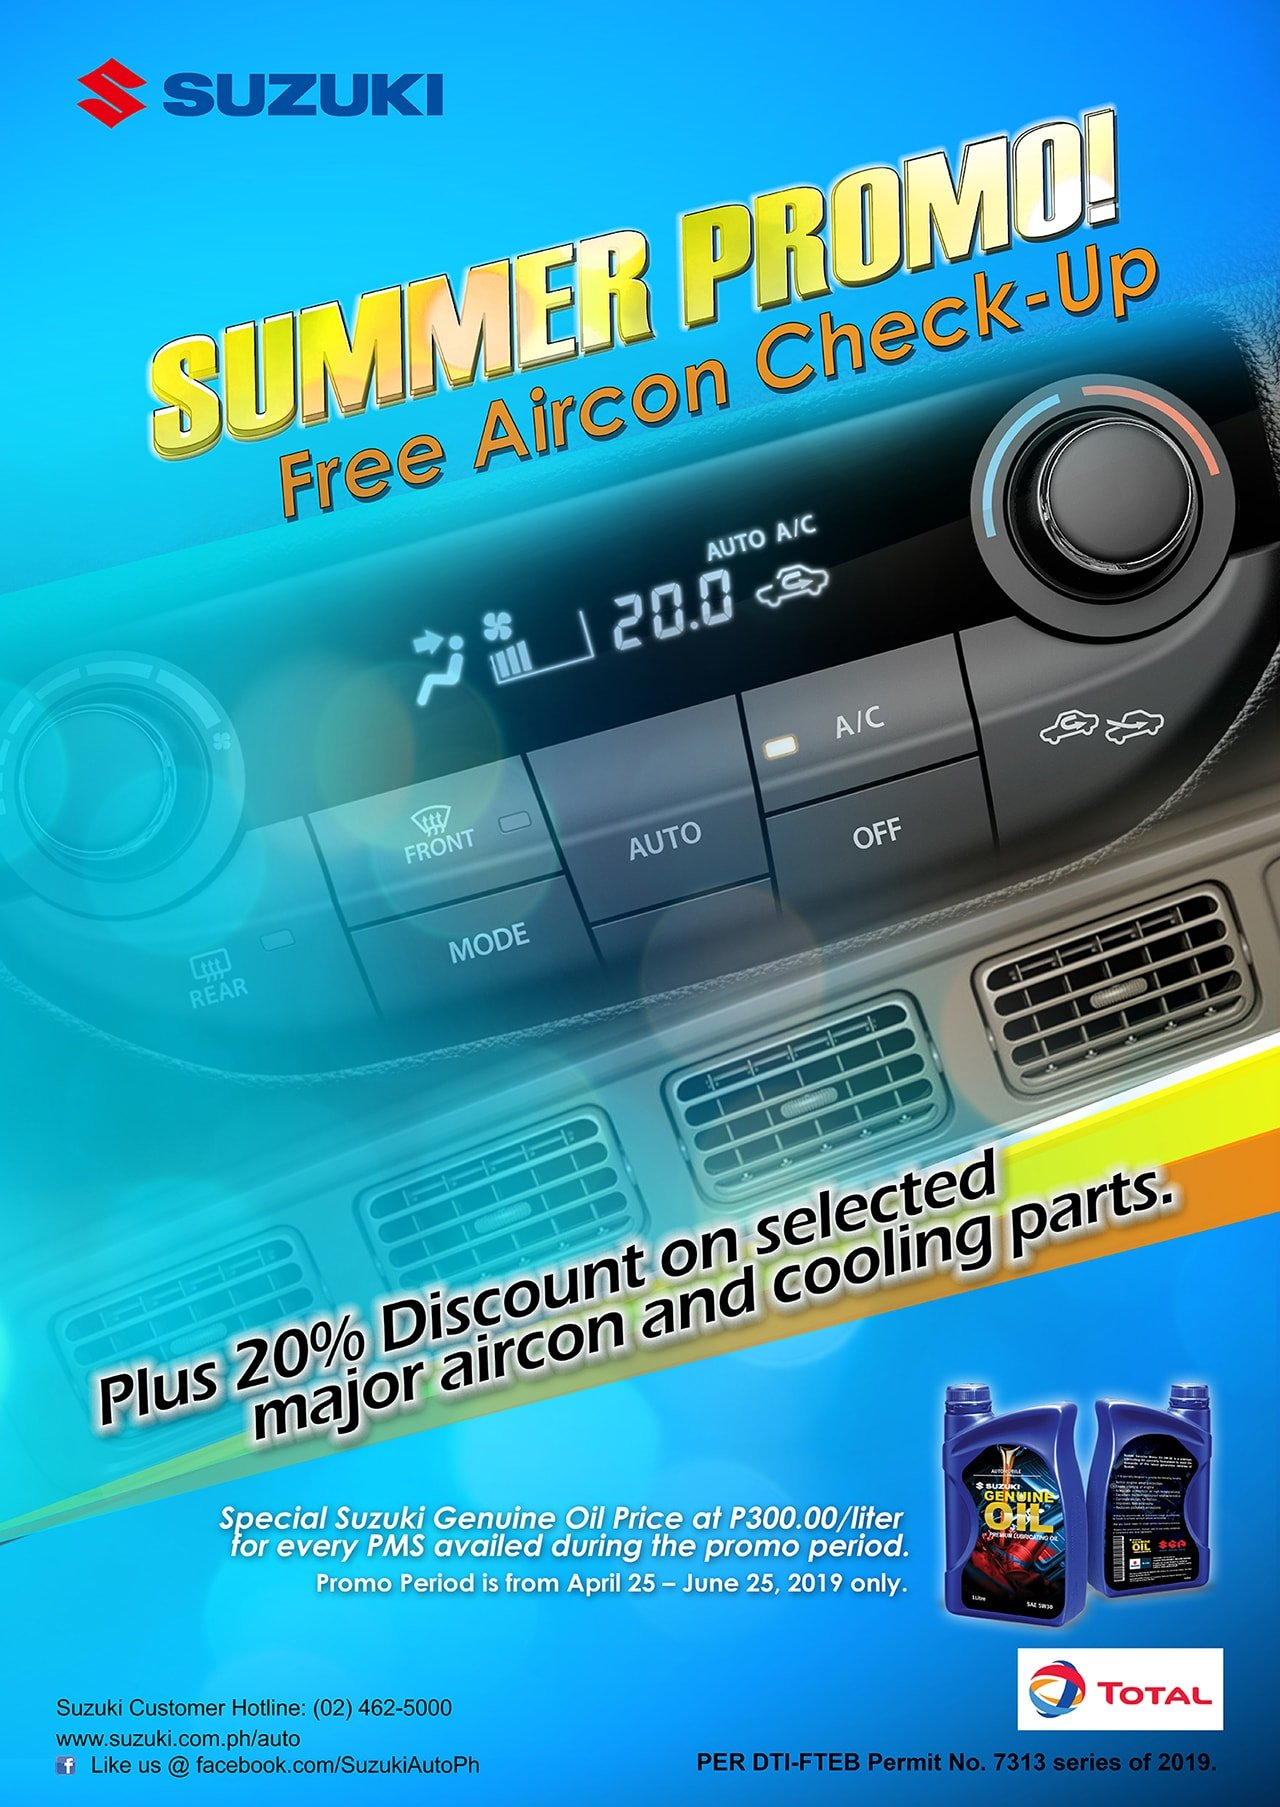 FREE AIRCON CHECK-UP SUMMER PROMO